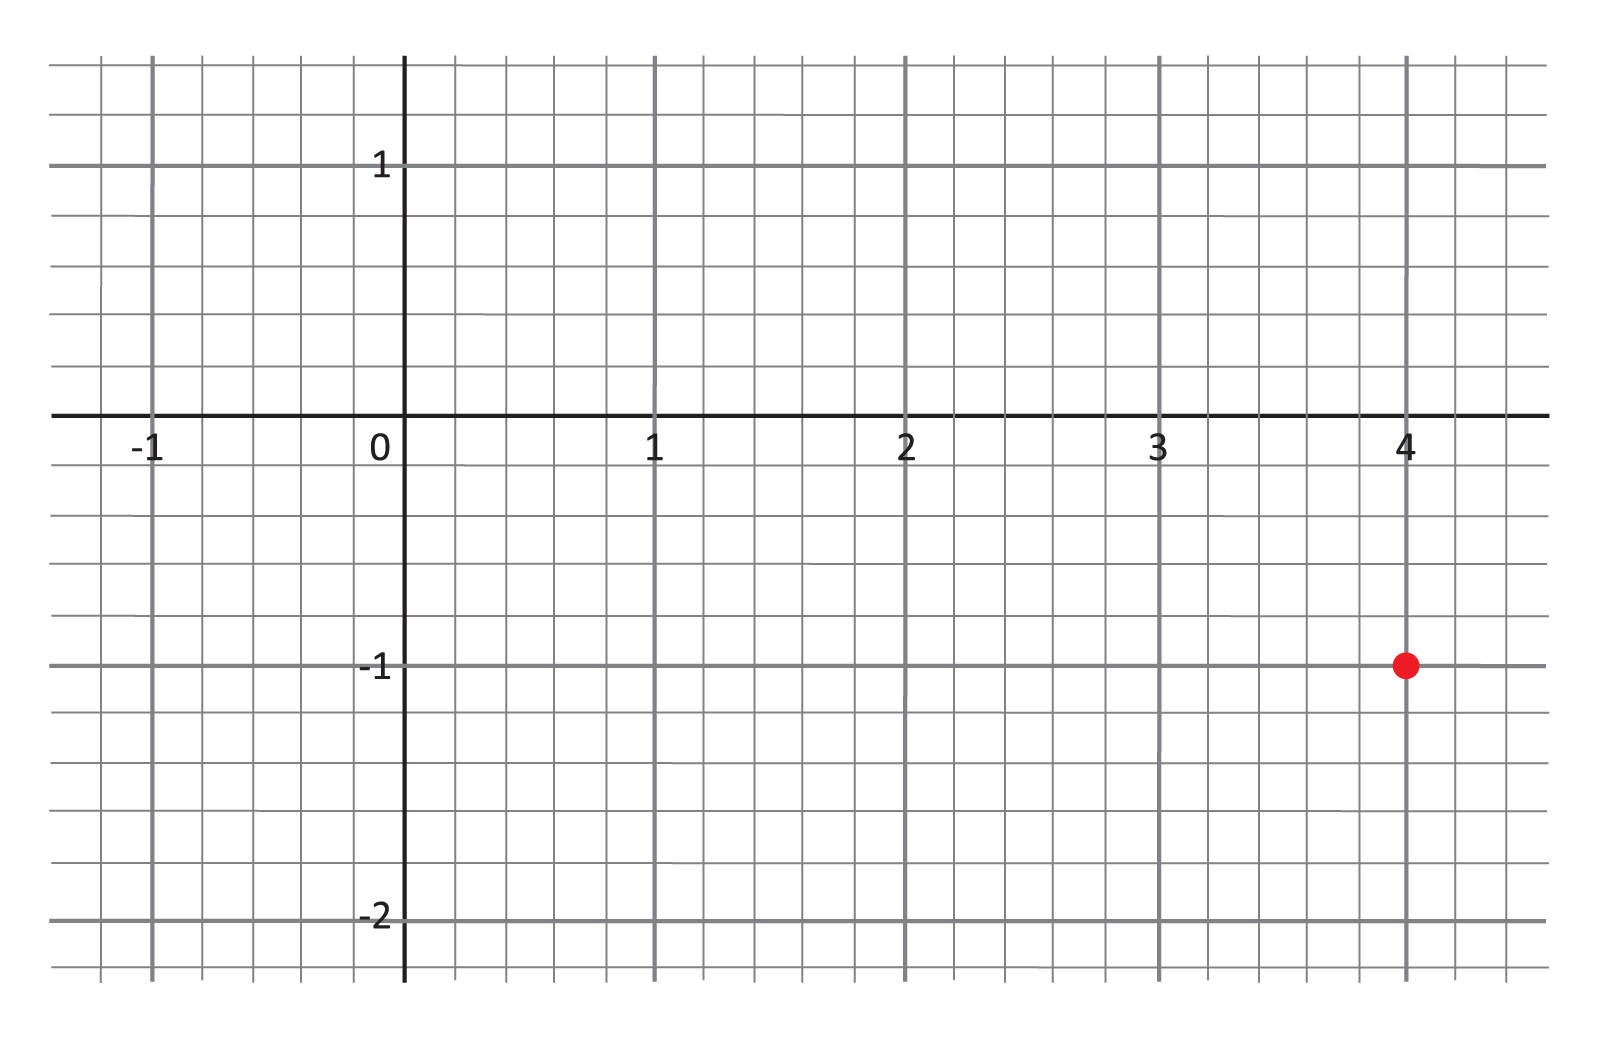 coordinate grid, red point at (4, negative 1) zoomed in